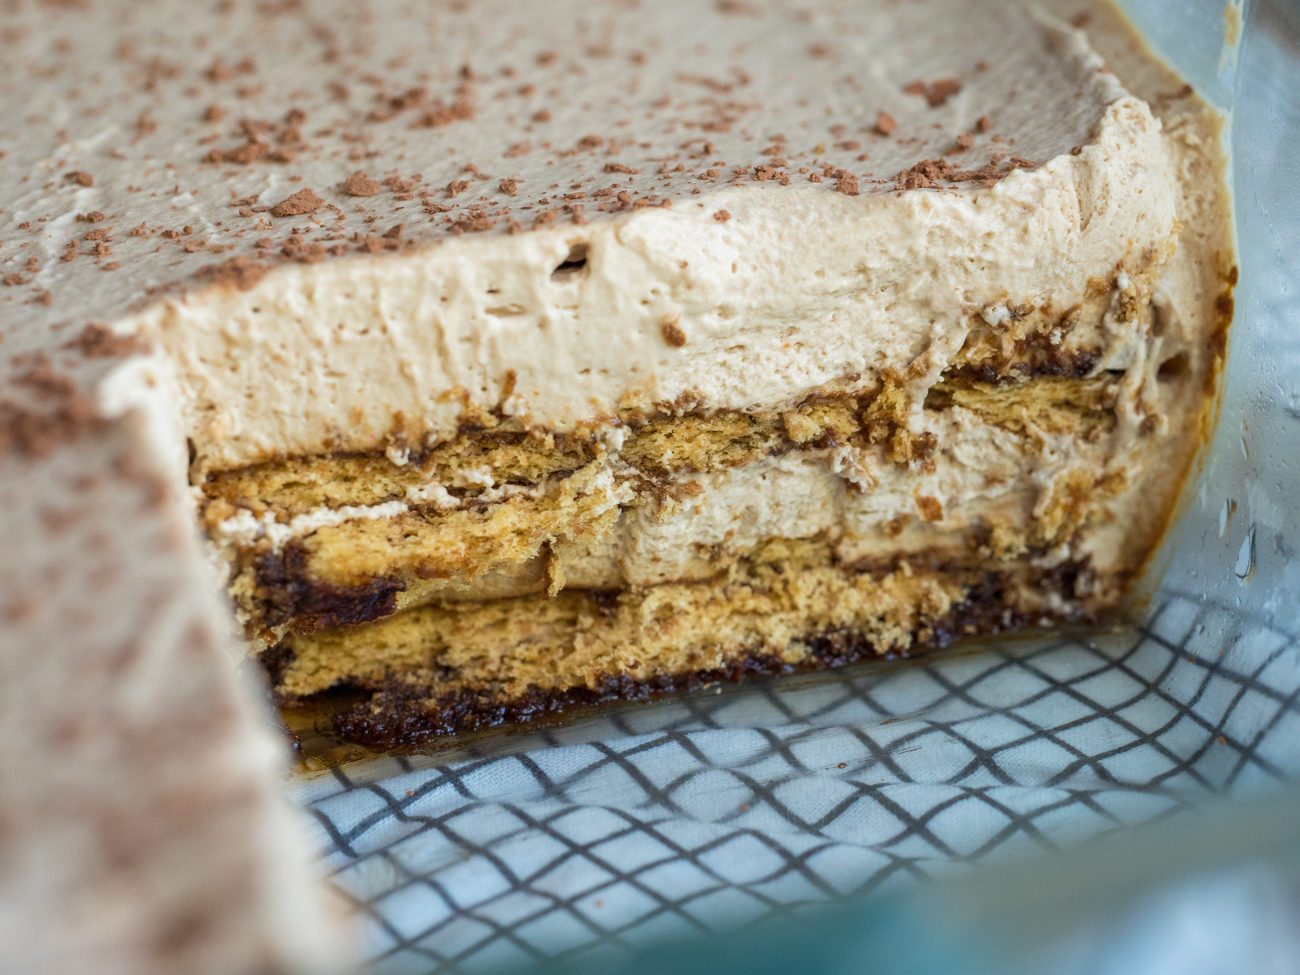 Icebox Coffe Icebox Cake Horizontal 2